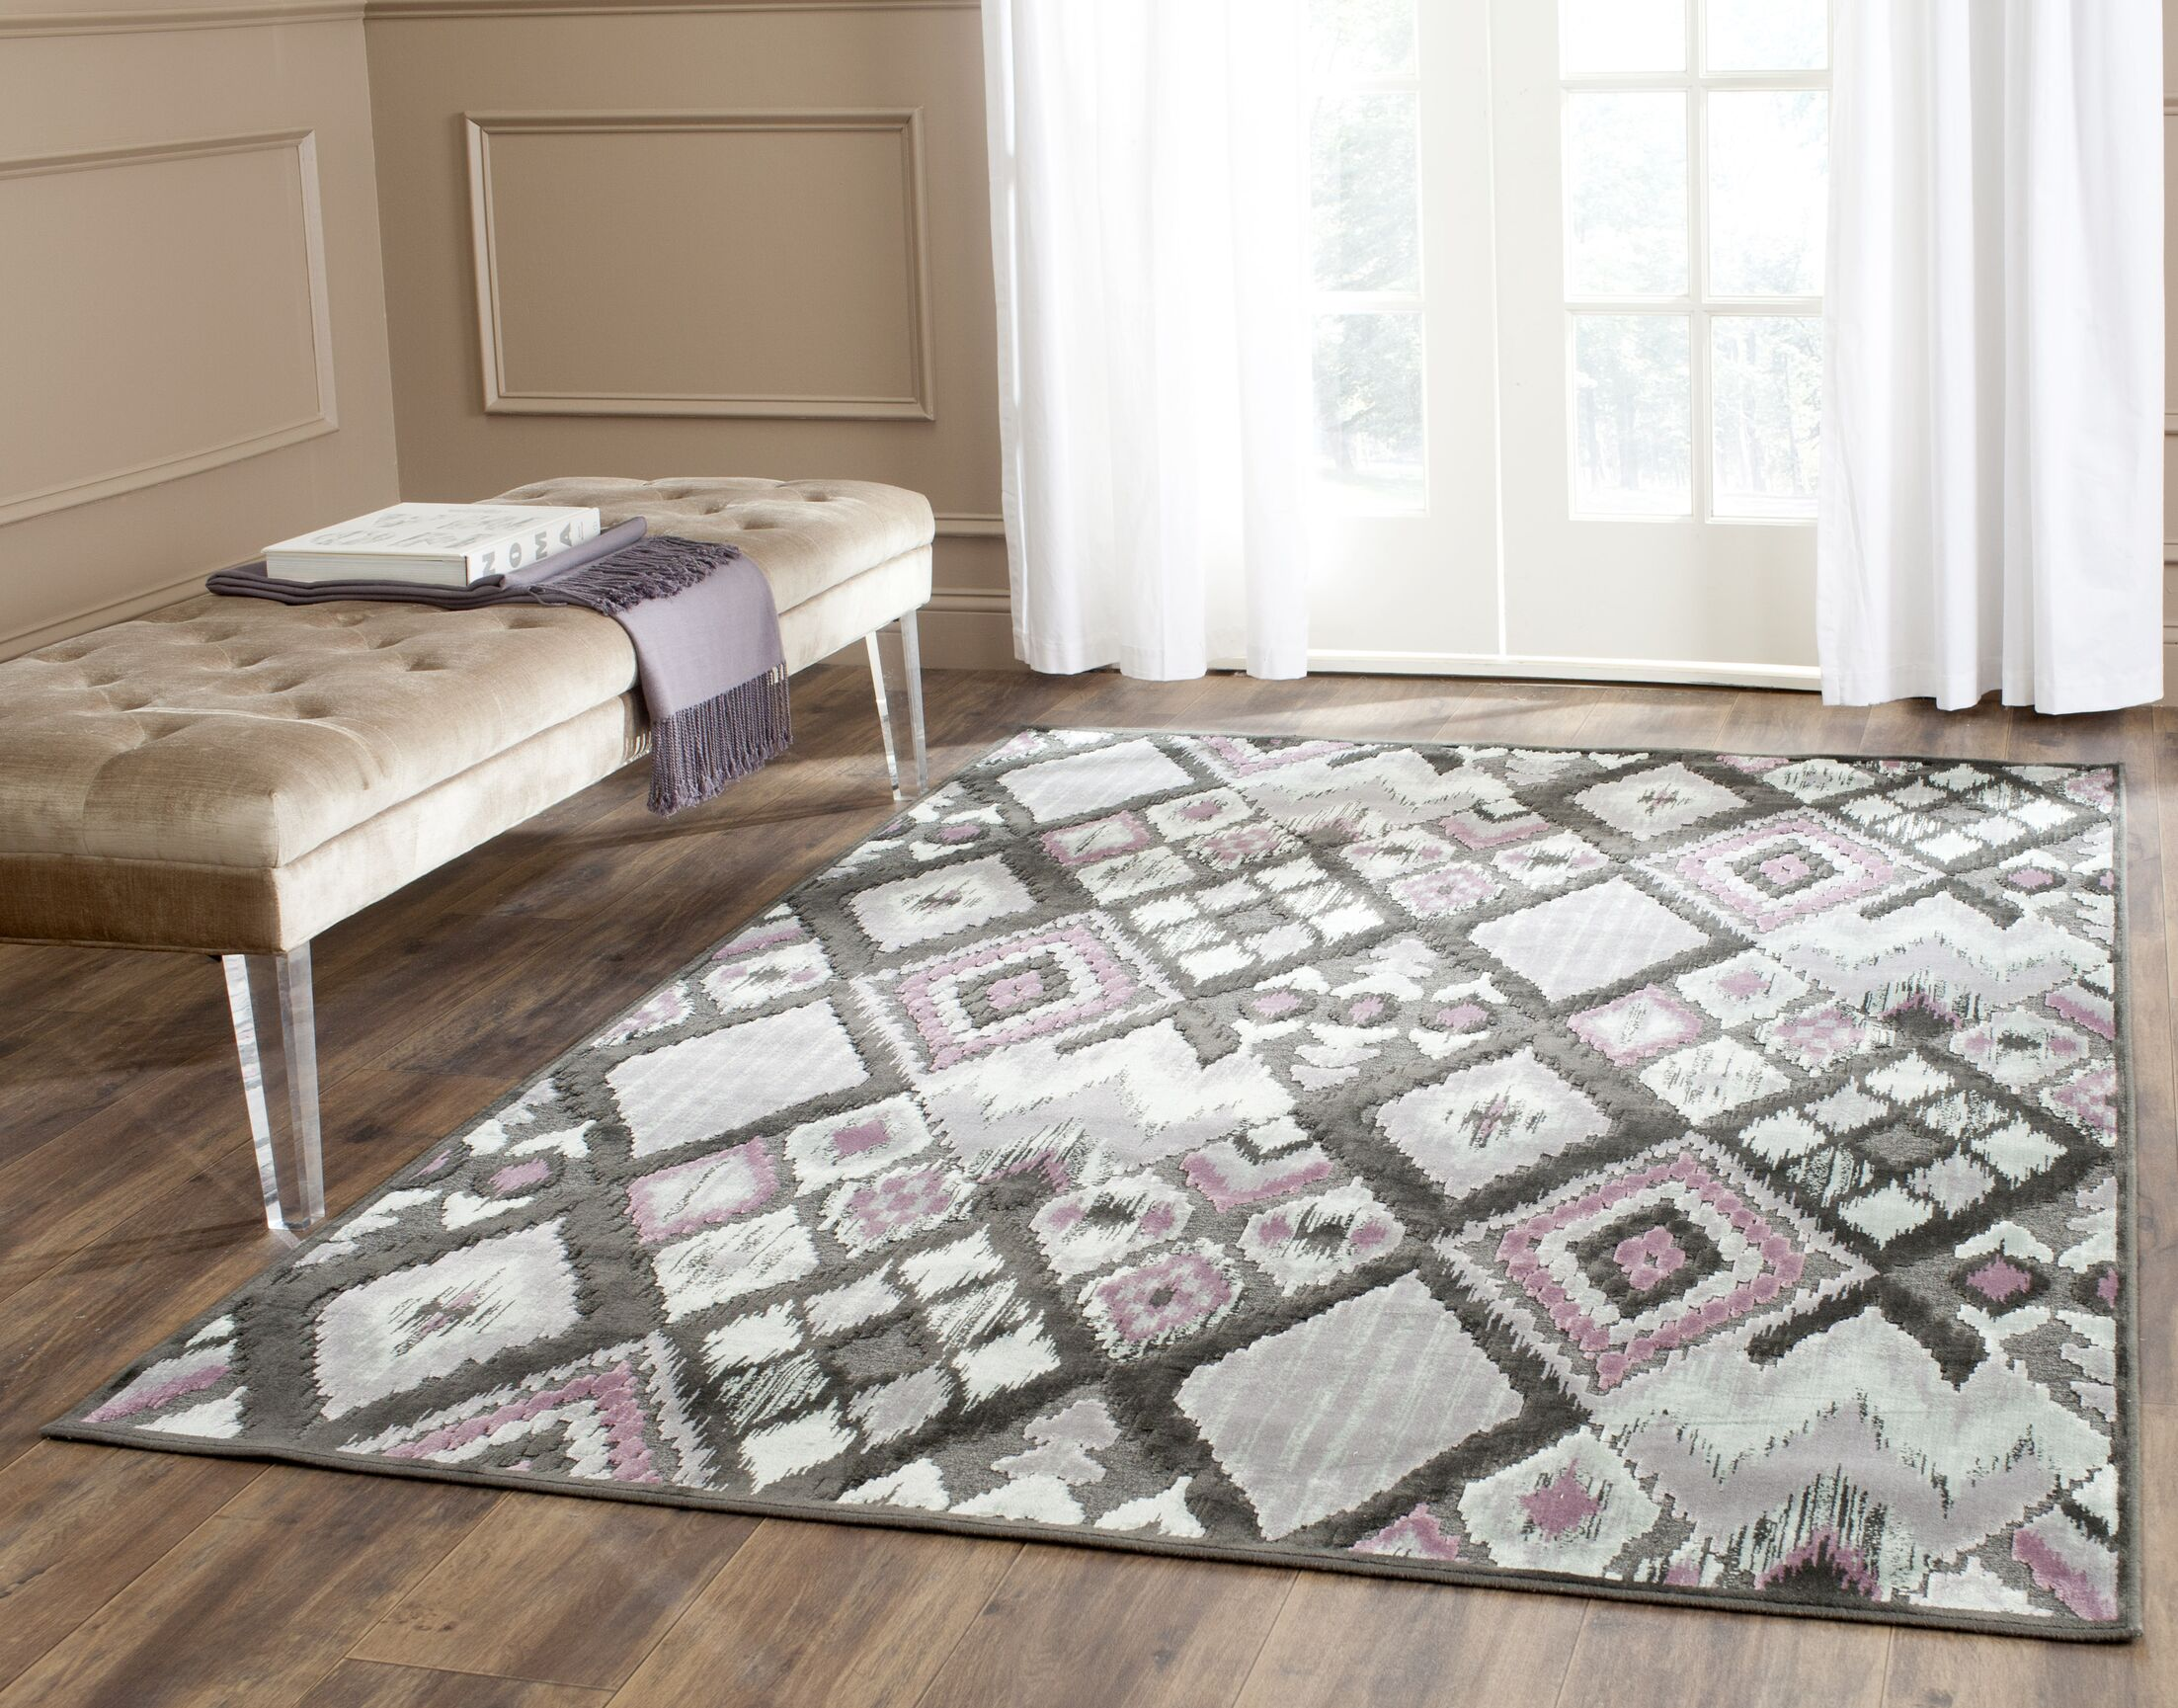 Saint-Michel Charcoal/Pink Area Rug Rug Size: Rectangle 5'3